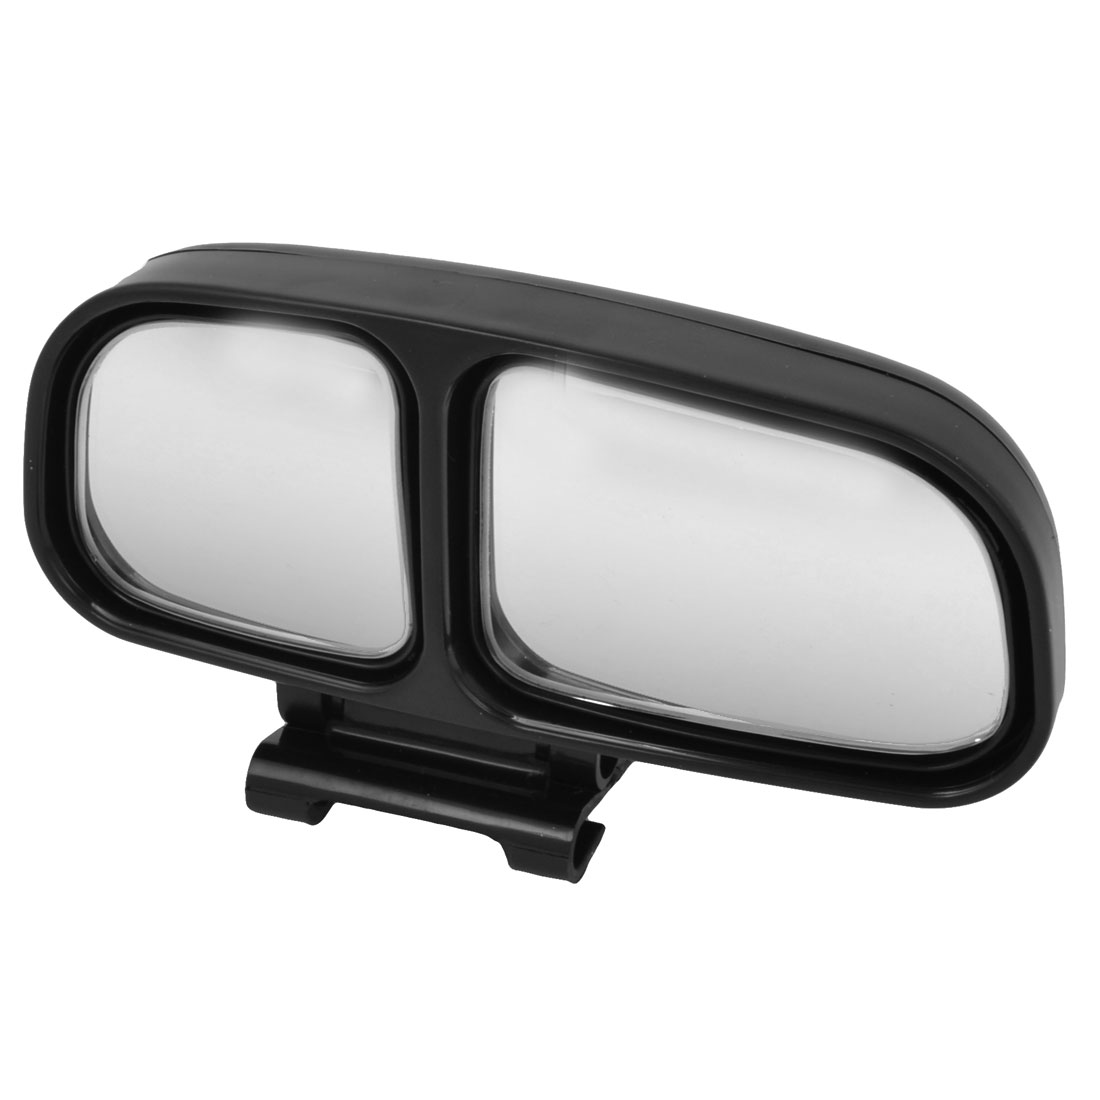 Unique Bargains Right Side Wide Angle Rear View Blind Spot Mirror Black for Truck Car